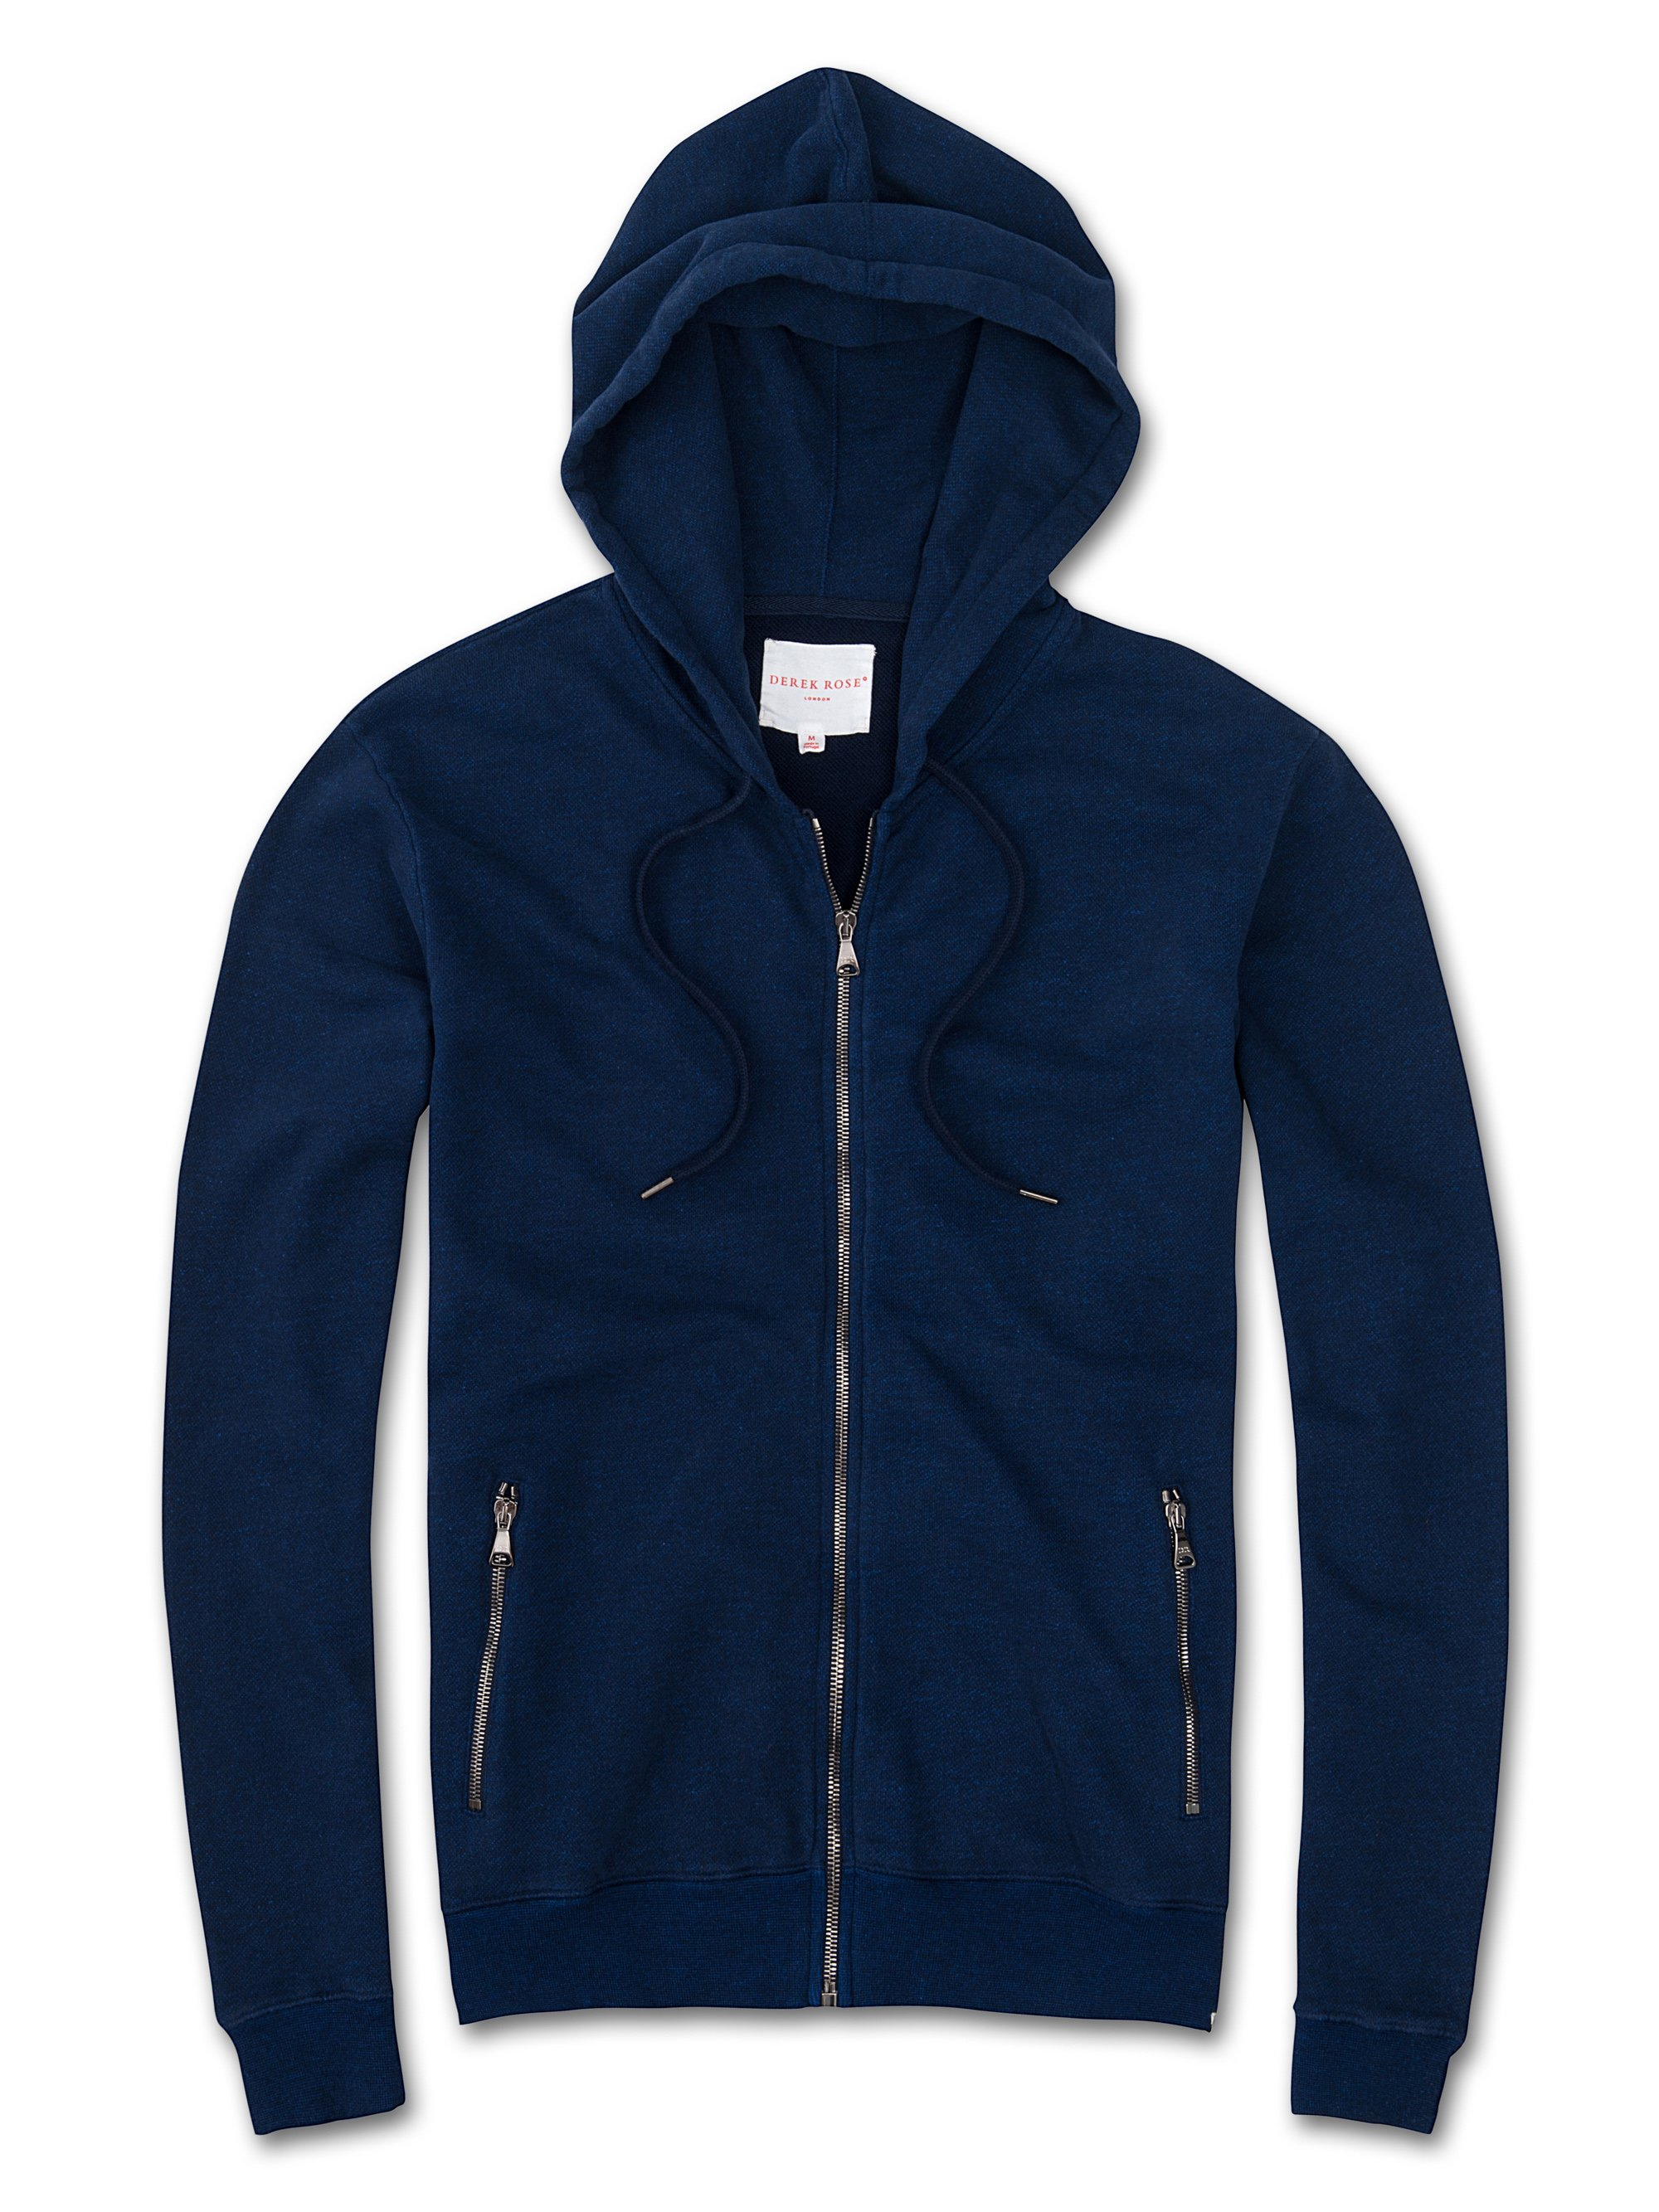 Men's Hoodie Devon Loopback Cotton Navy